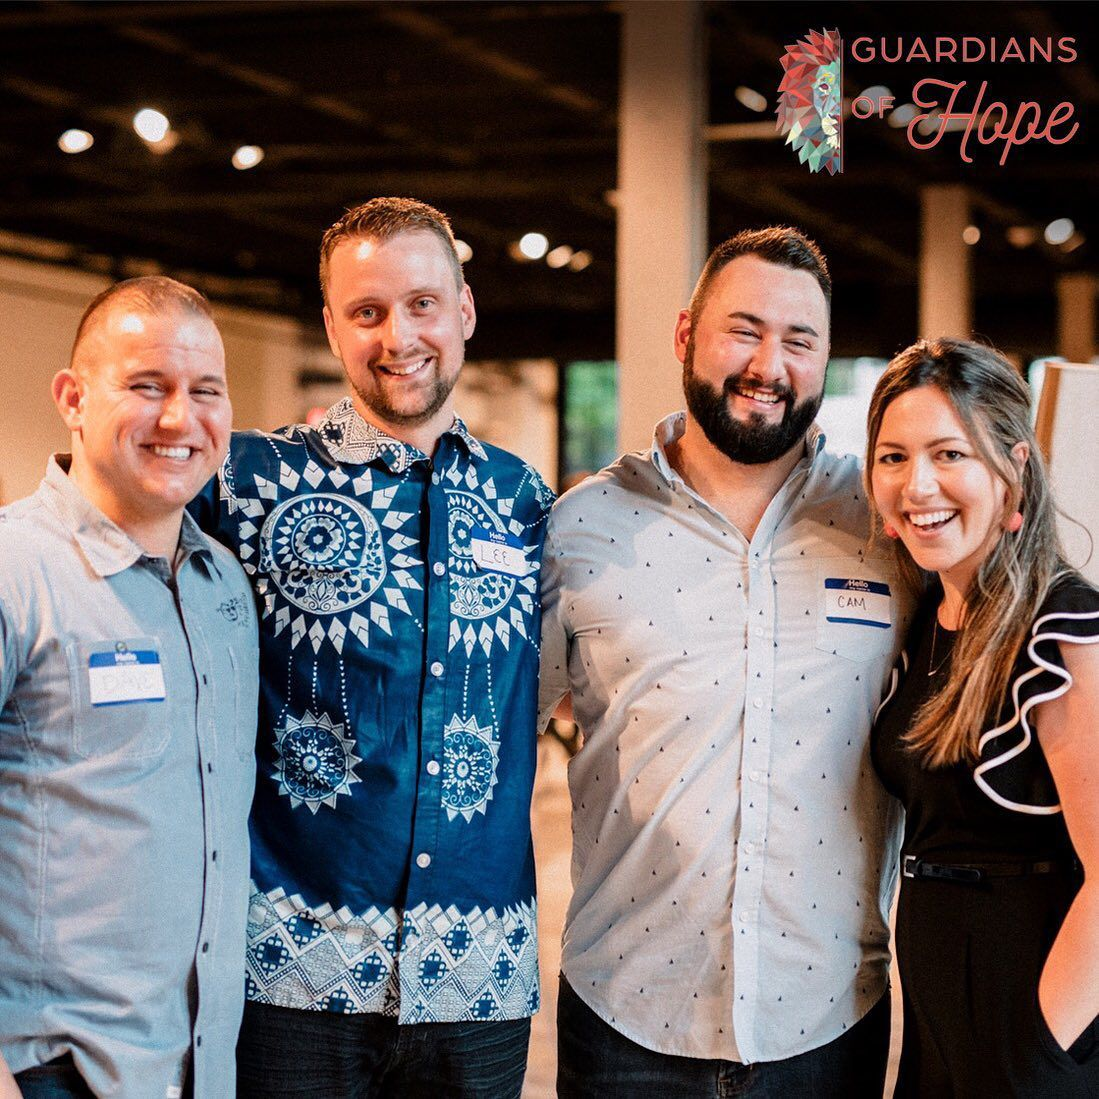 Guardians of Hope Founders